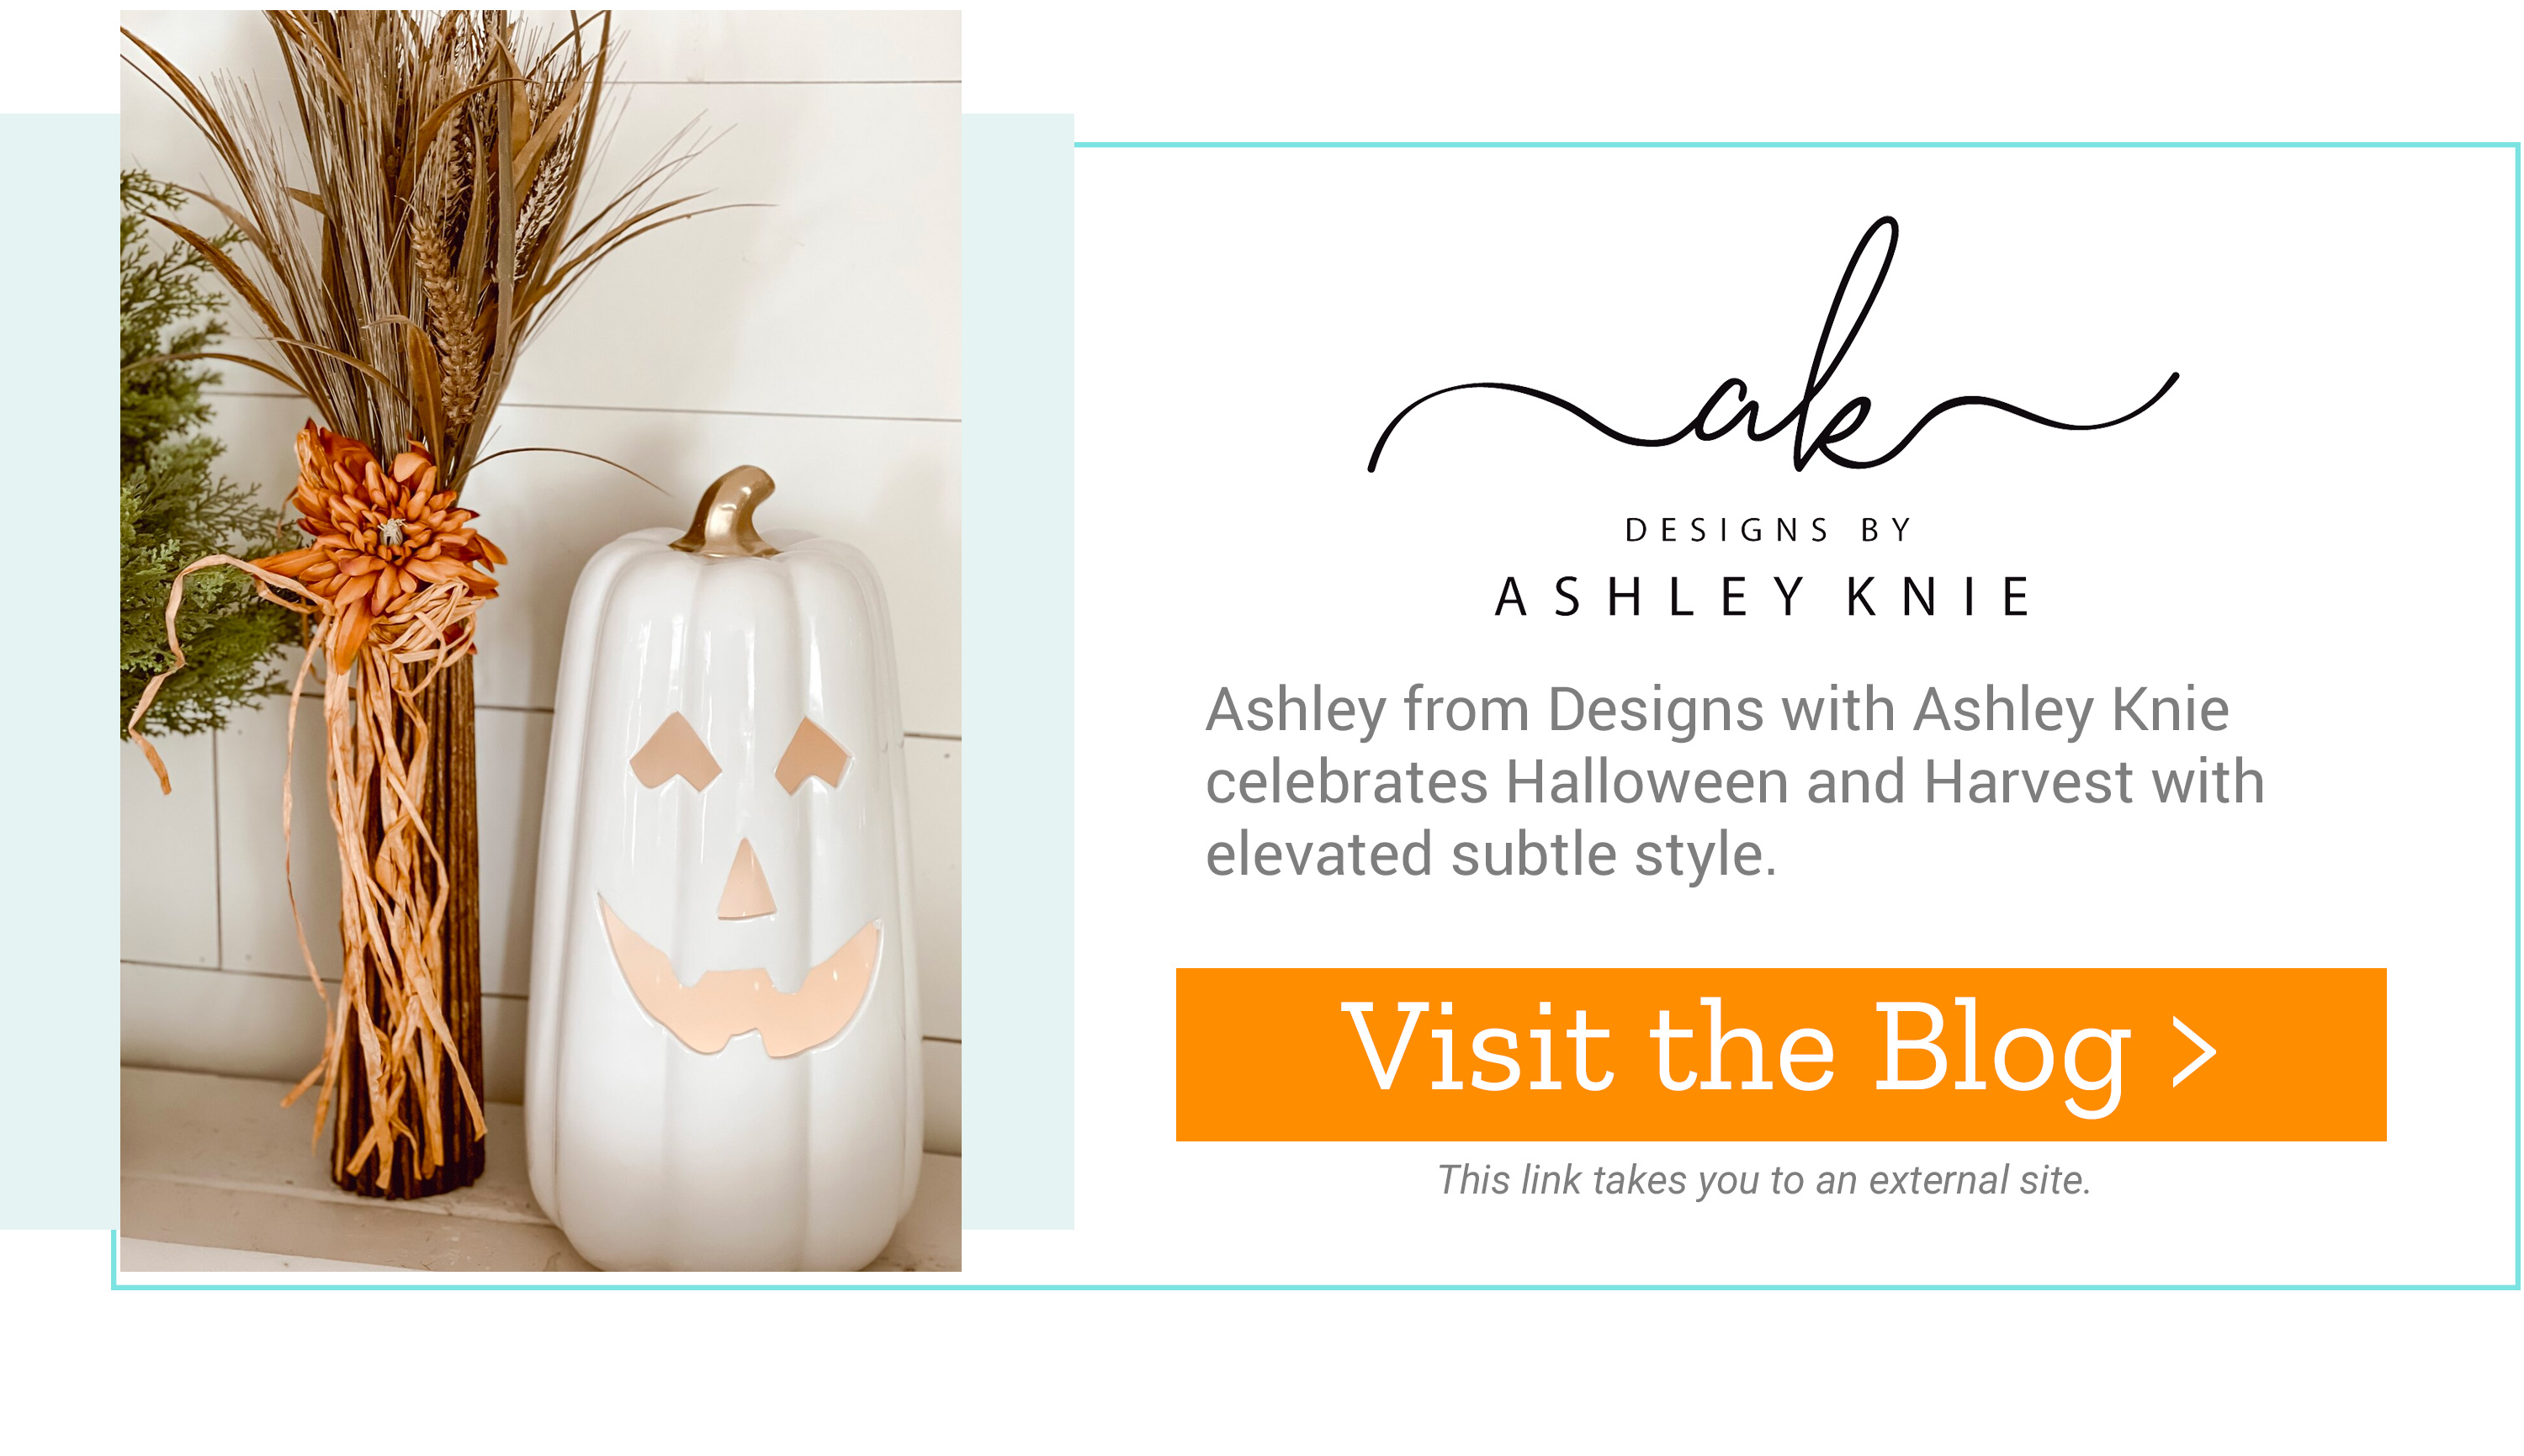 Ashley Knie - Ashley from Designs with Ashley Knie celebrates Halloween and Harvest with elevated subtle style. Visit the Blog >